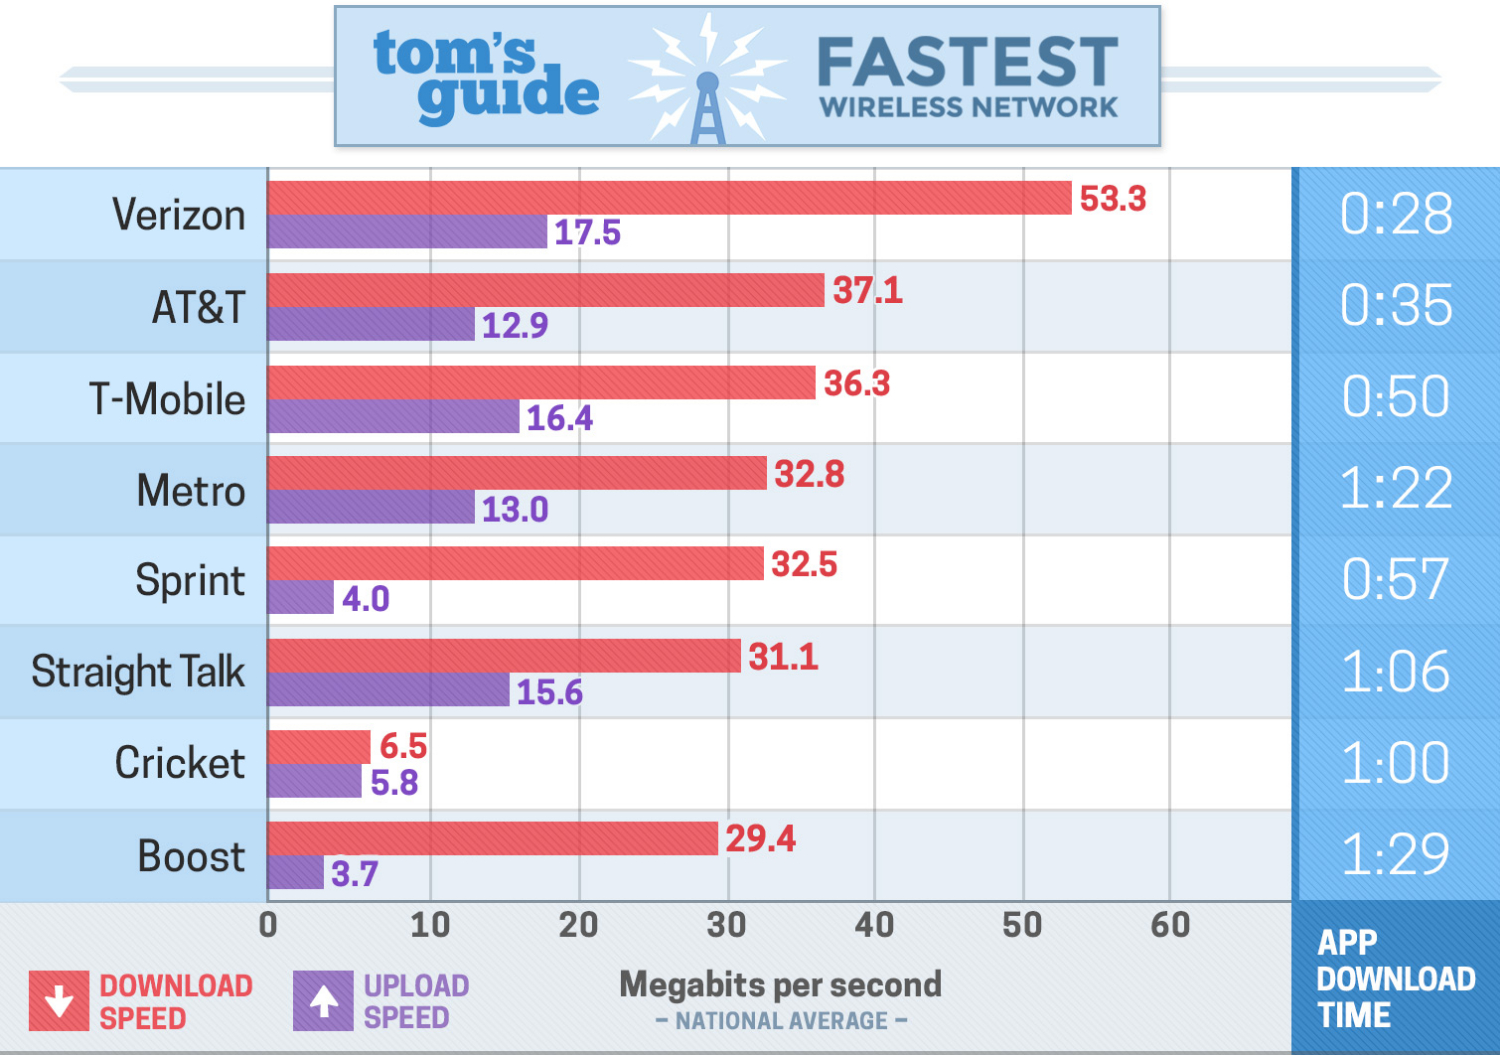 tom's guide to the fastest wireless network chart